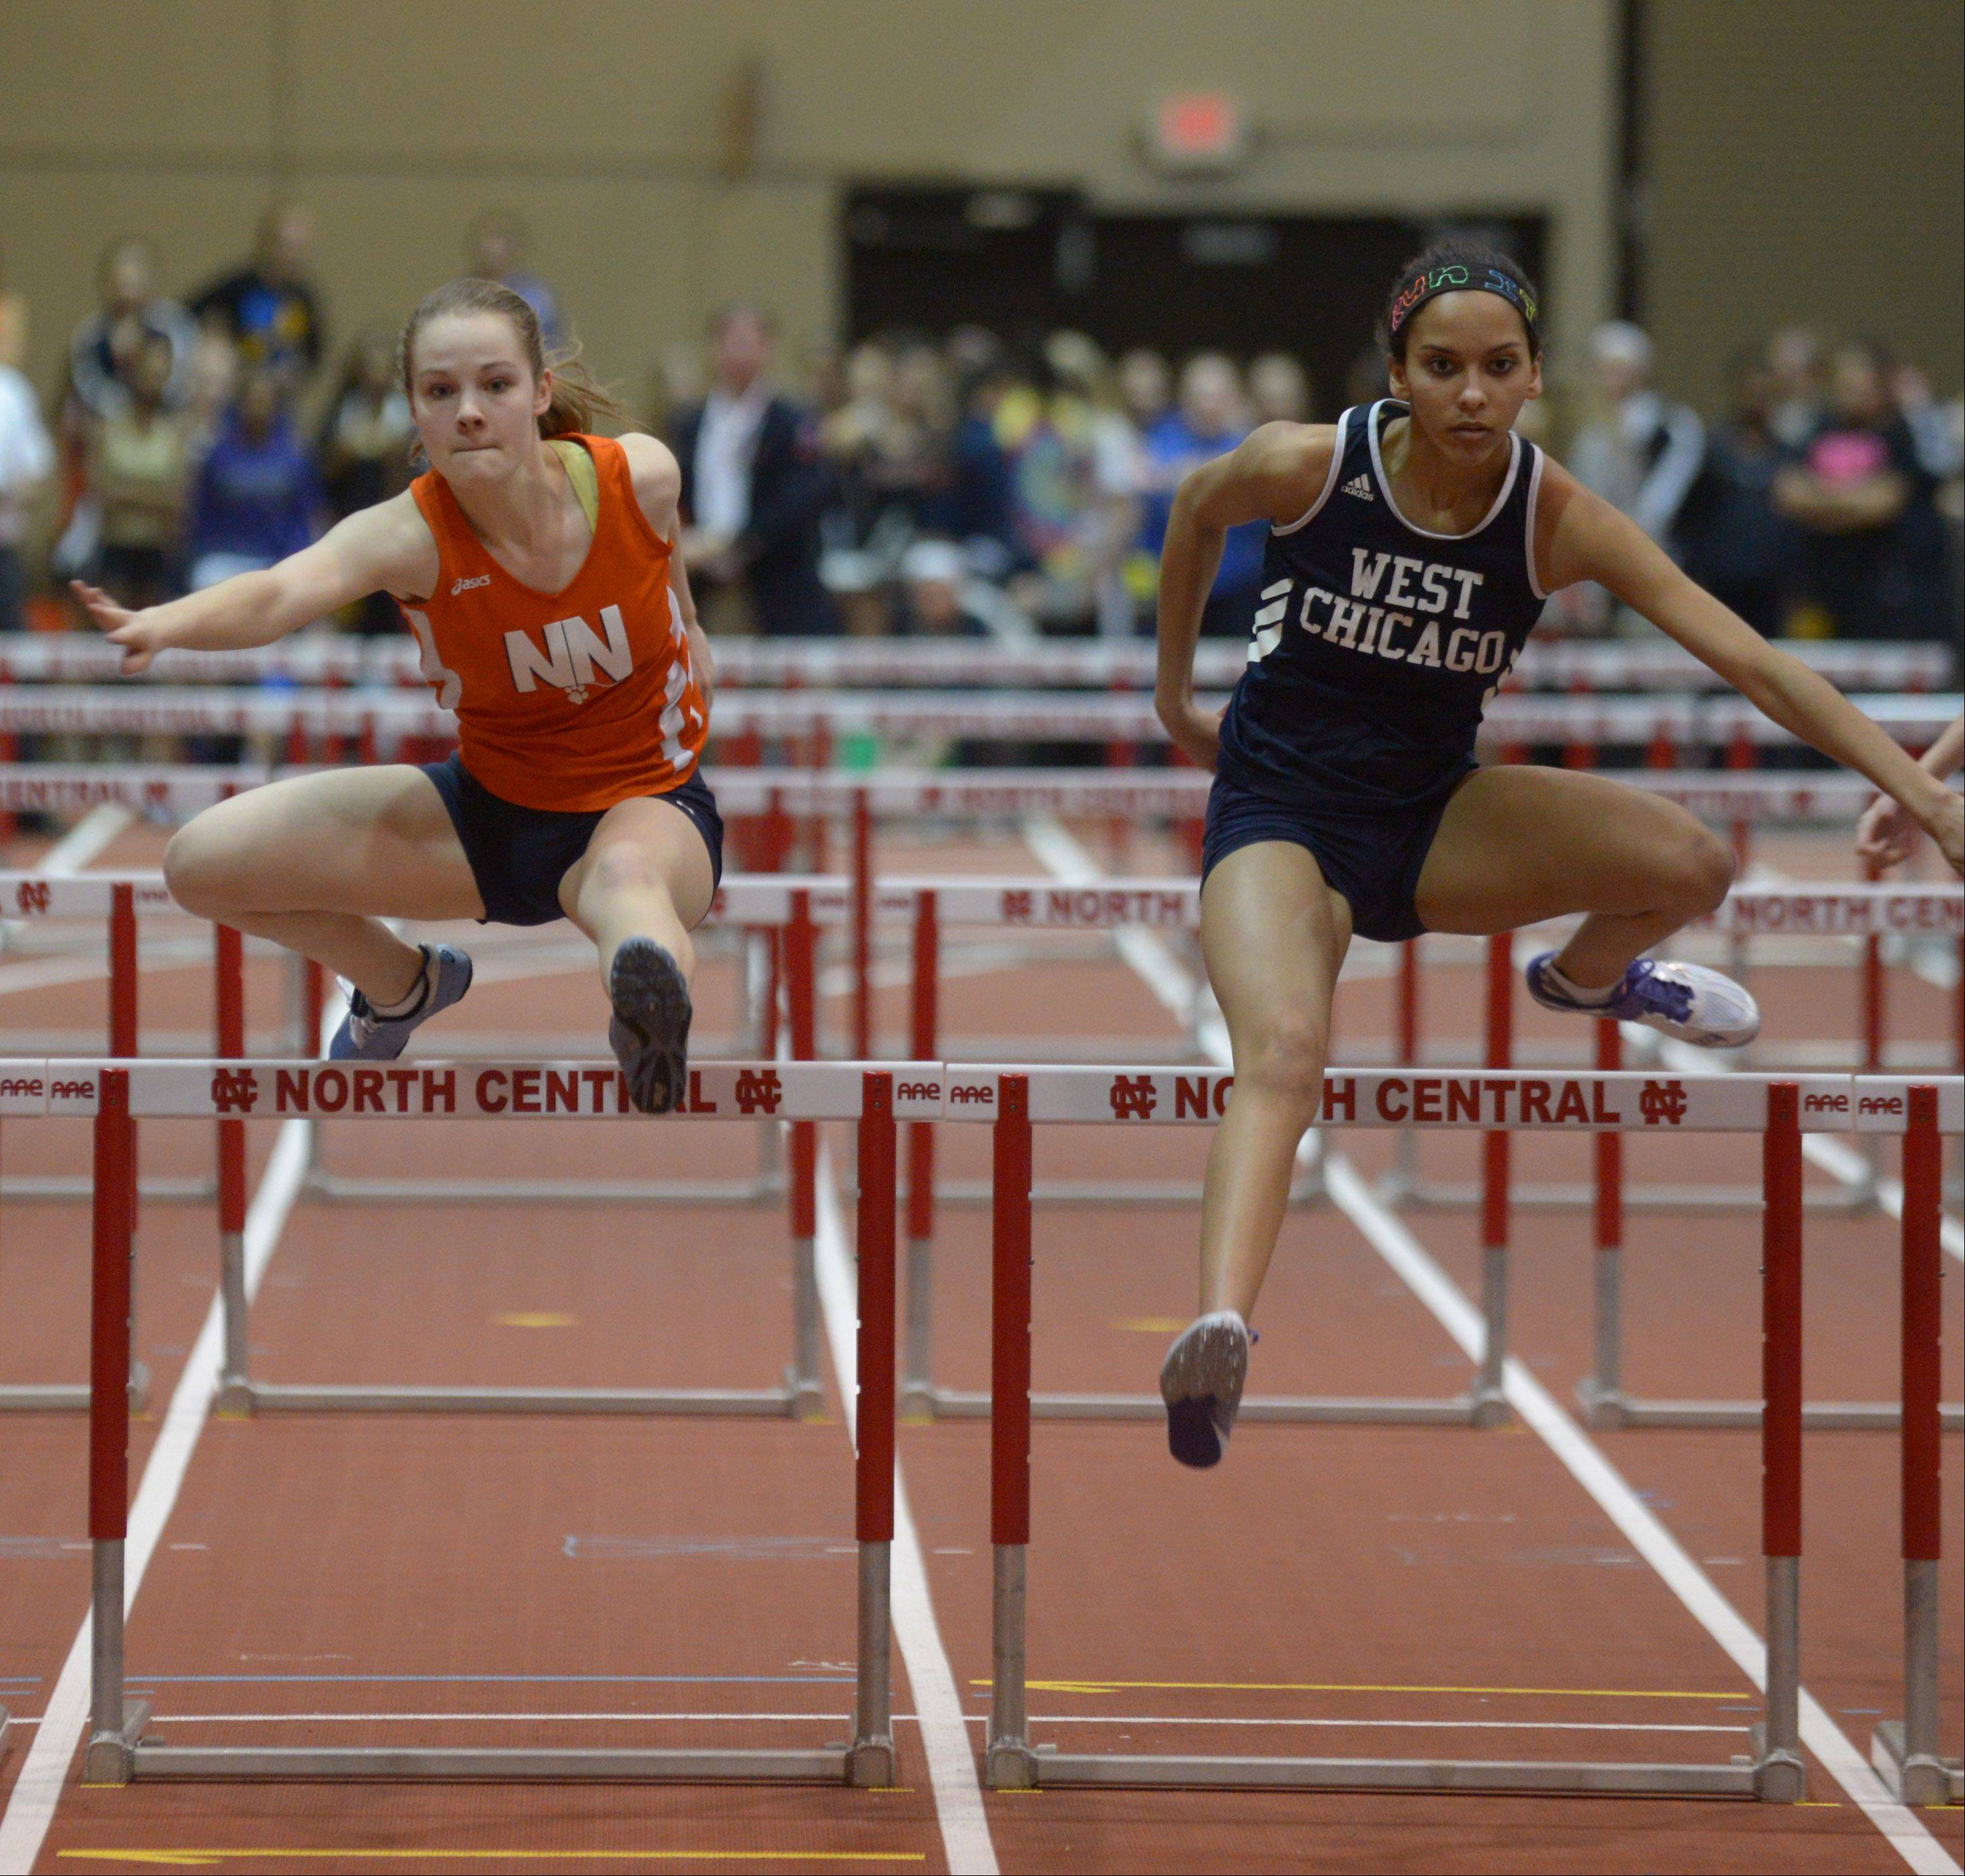 Sarah Triner of West Chicago,left, and Emily Painter of Naperville North are neck and neck in the 55 meter hurdles at the DuPage Valley Conference girls indoor track meet.